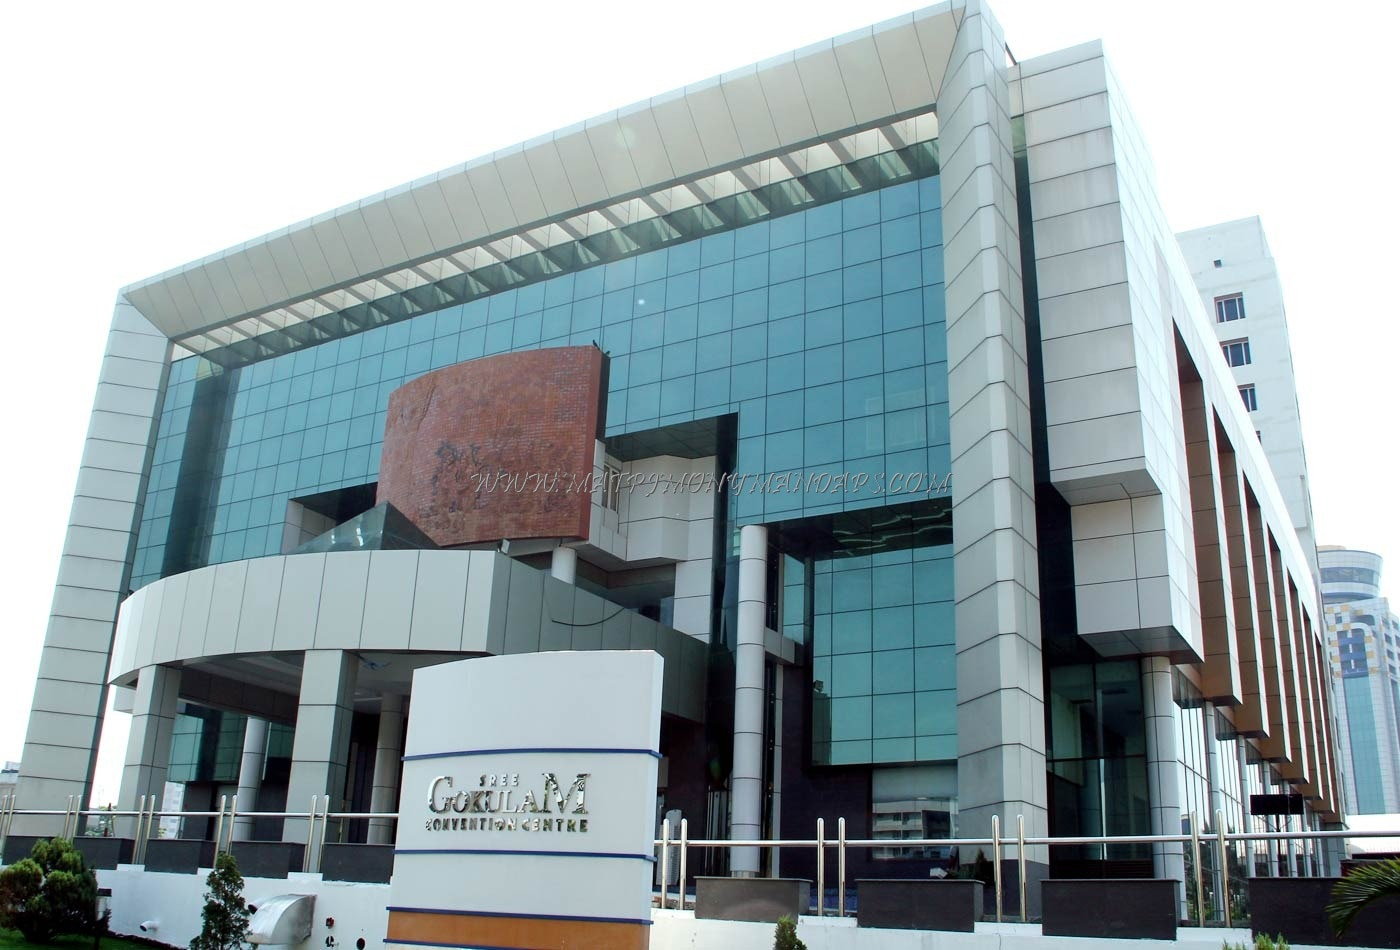 Find the availability of the Sree Gokulam Convention Centre - Sabari Hall (A/C) in Kaloor, Kochi and avail special offers